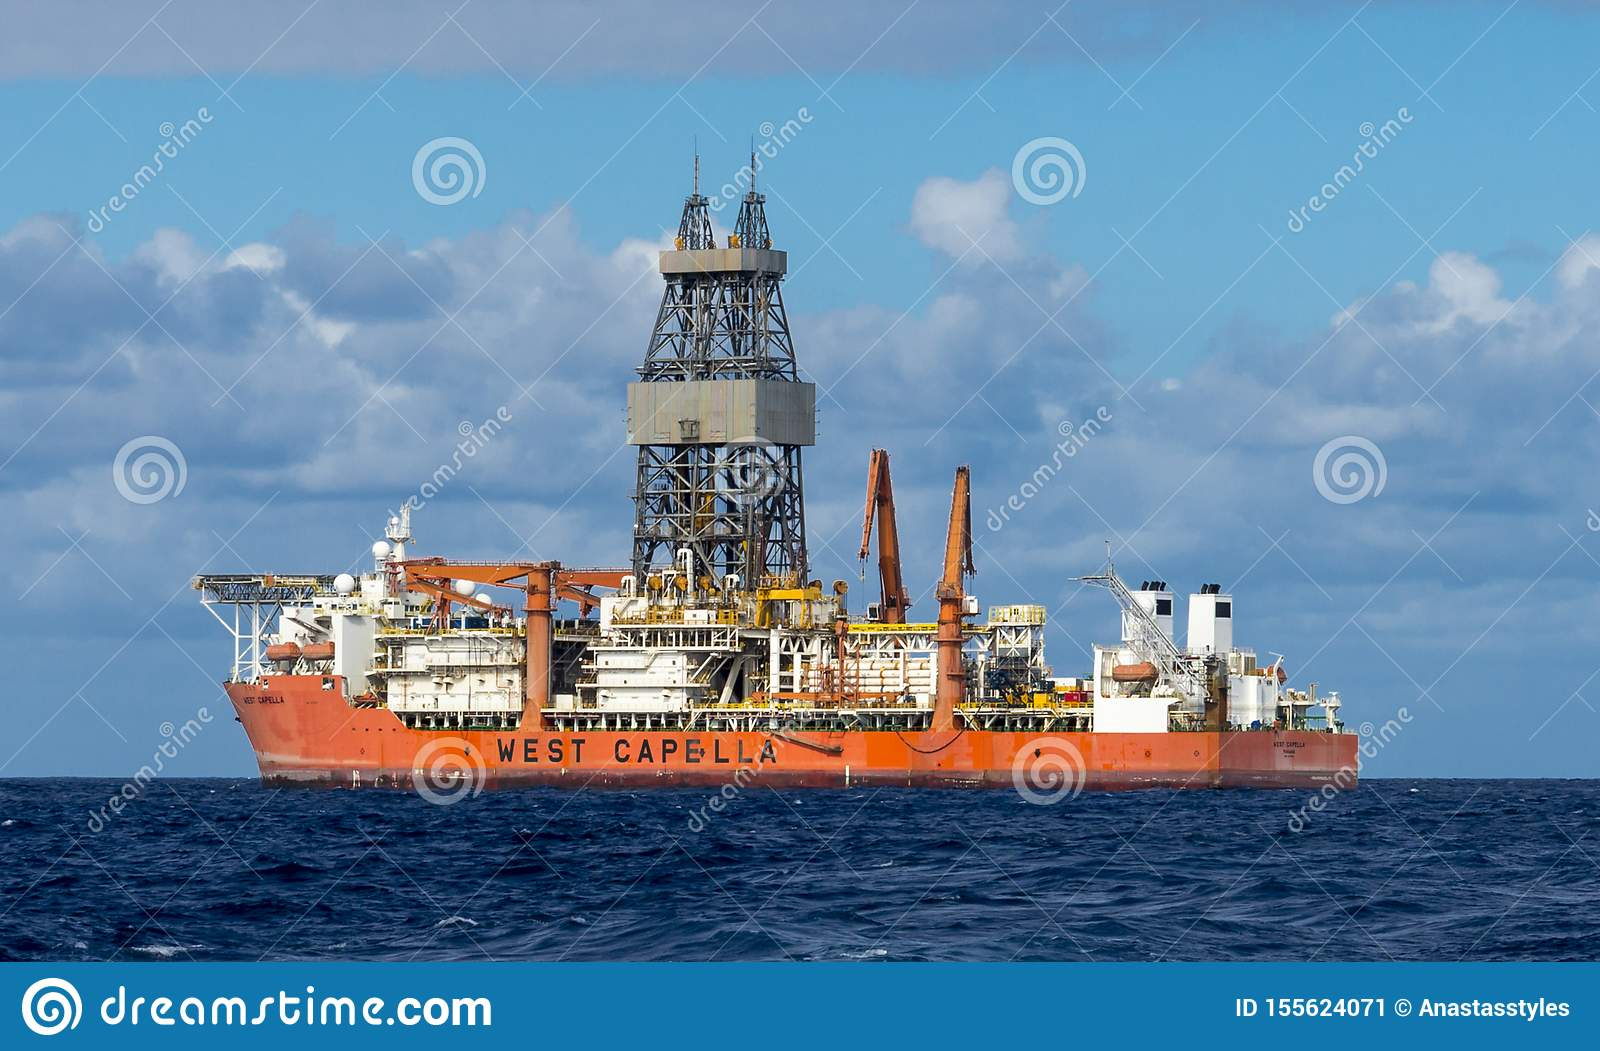 West Capella drillship for offshore deepwater drilling in Atlantic ocean nearby Tenerife, Canary Islands, Spain